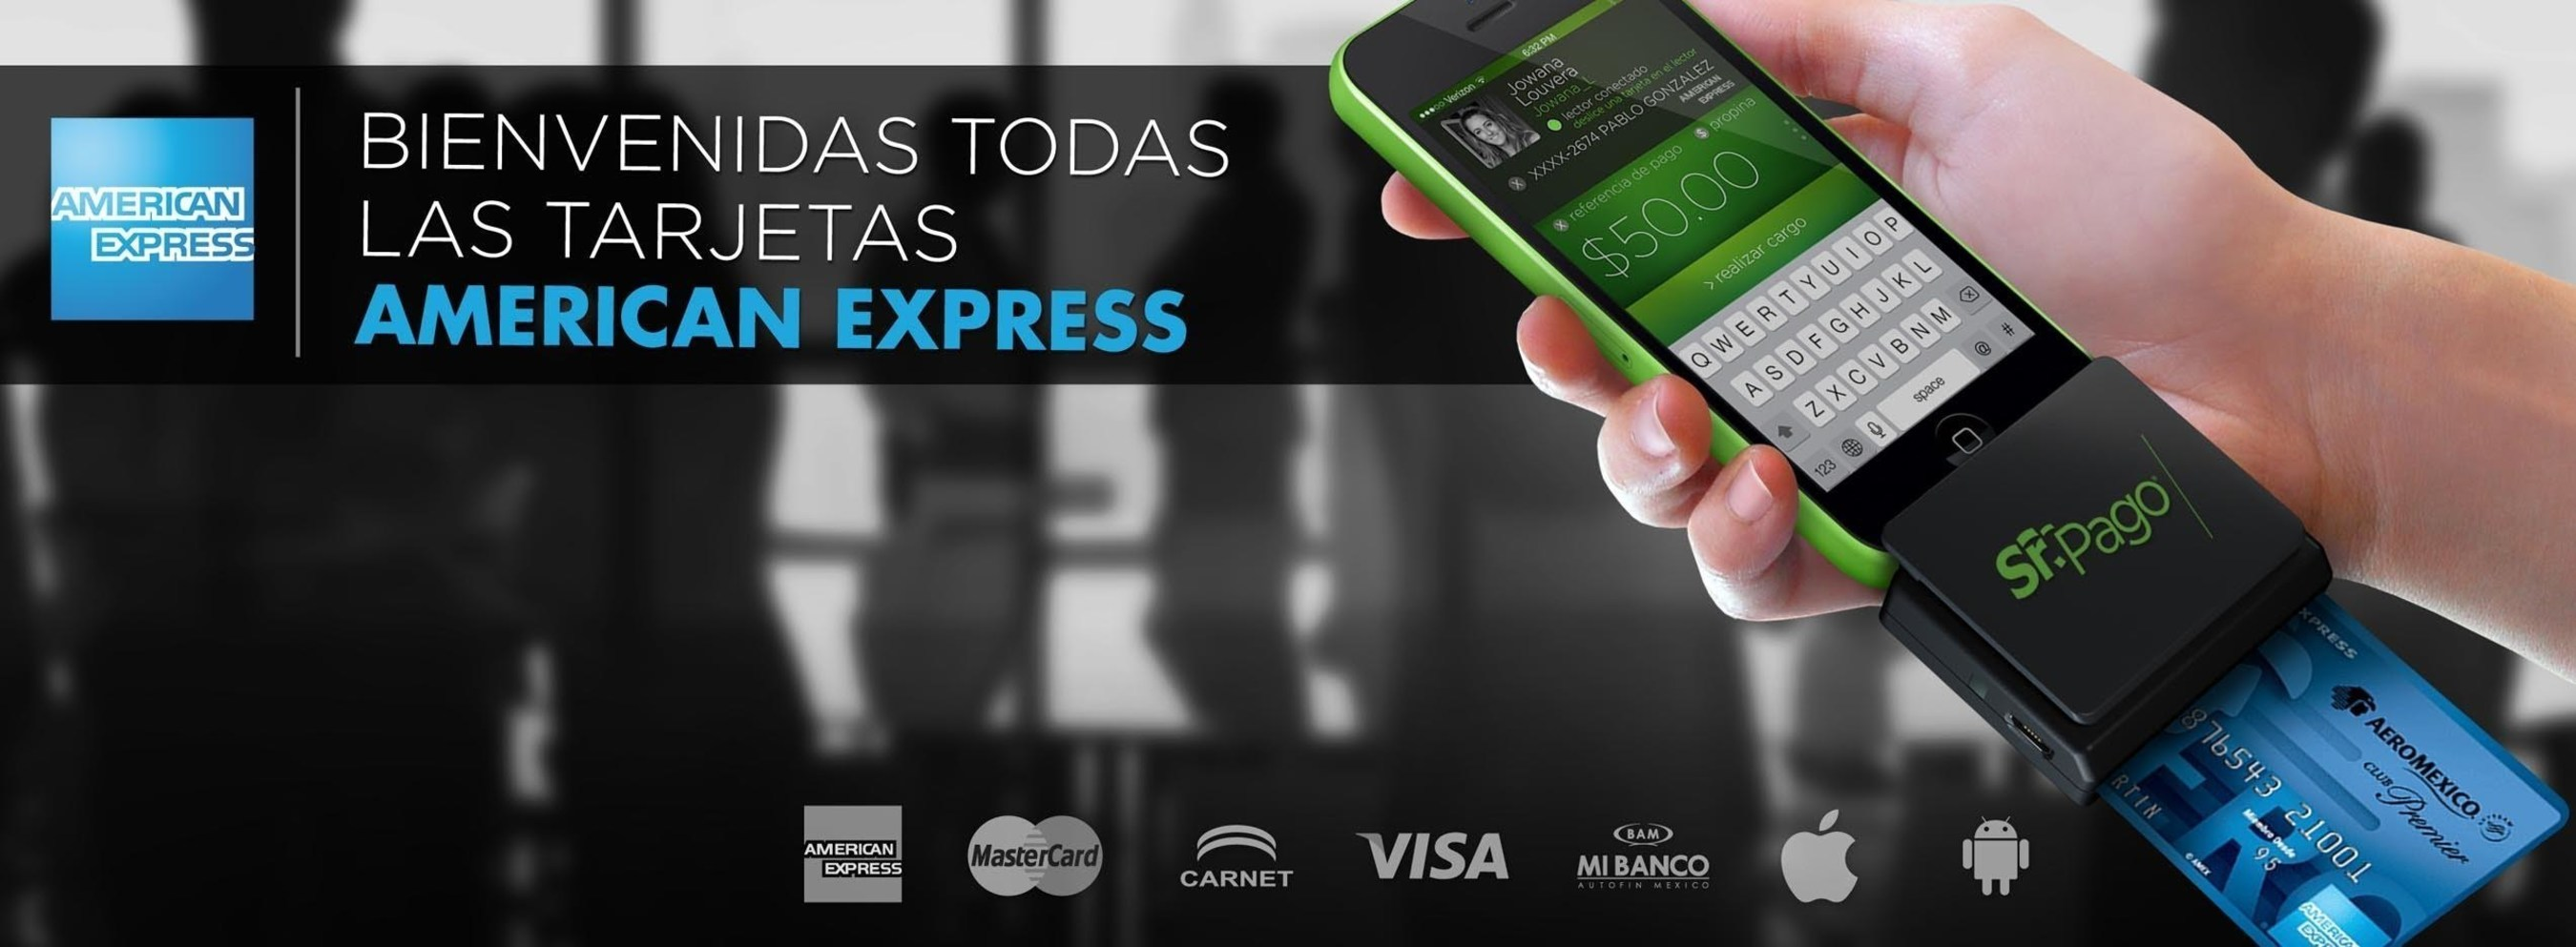 Welcome all American Express Cards in any Sr. Pago (Mr. Pay) Device